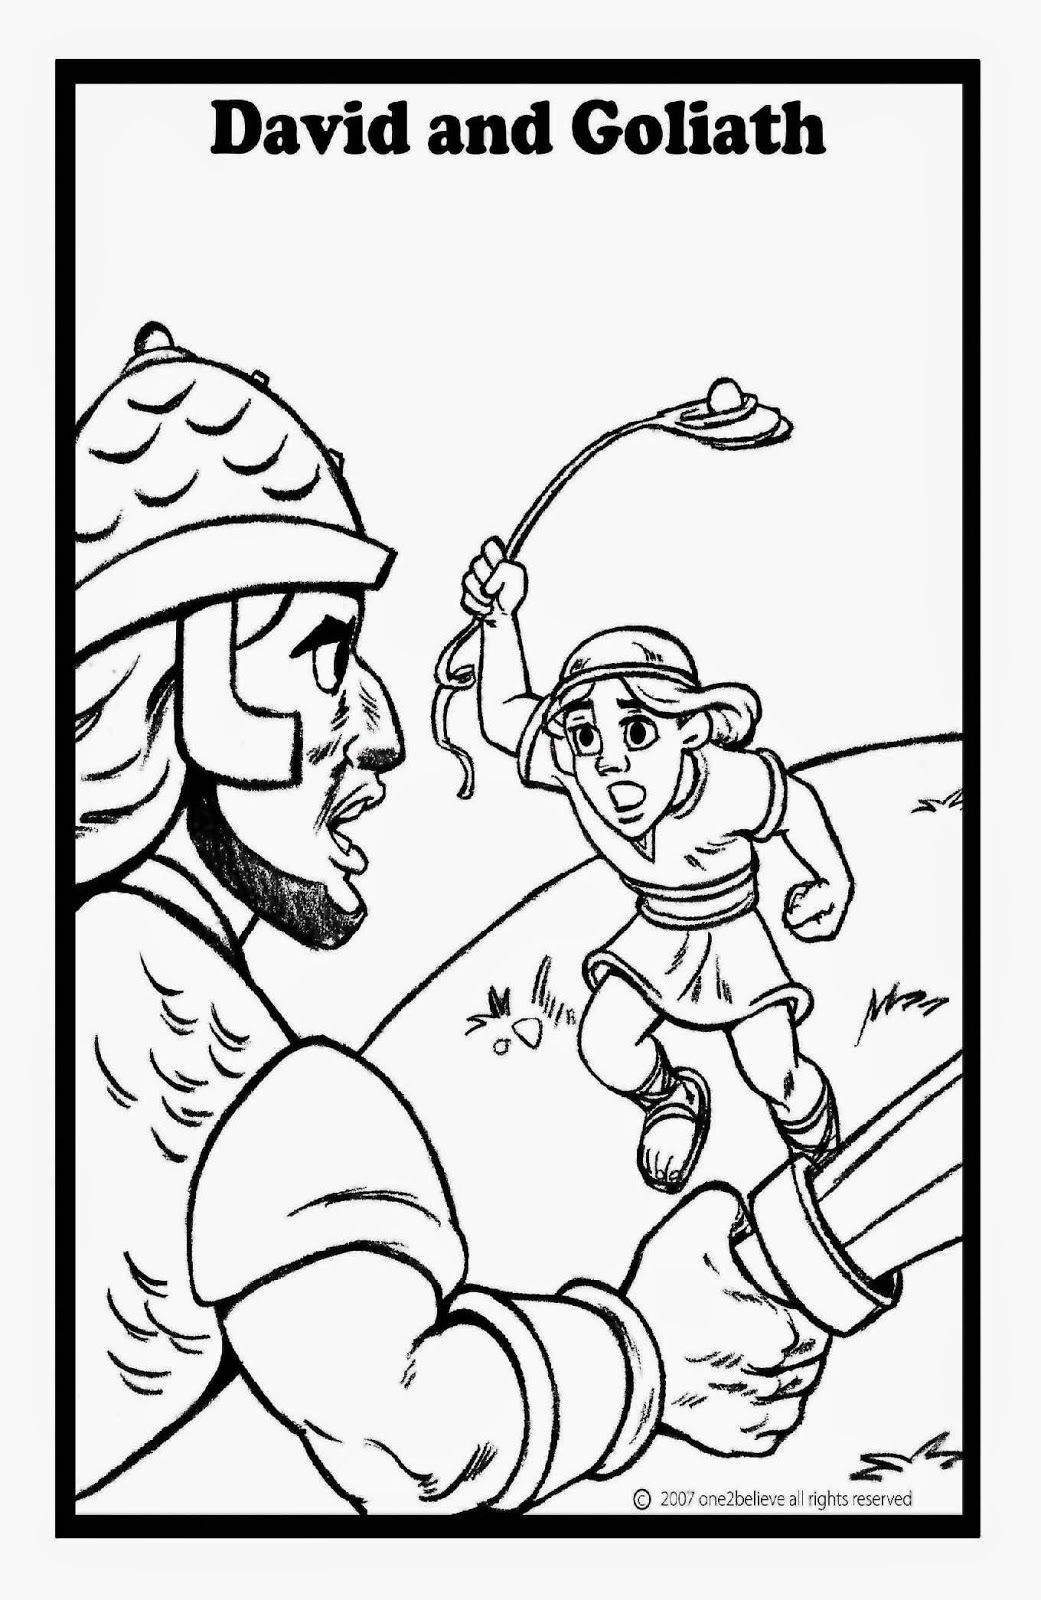 David And Goliath Coloring Pages Bible Coloring Pages Bible Coloring Sunday School Coloring Pages